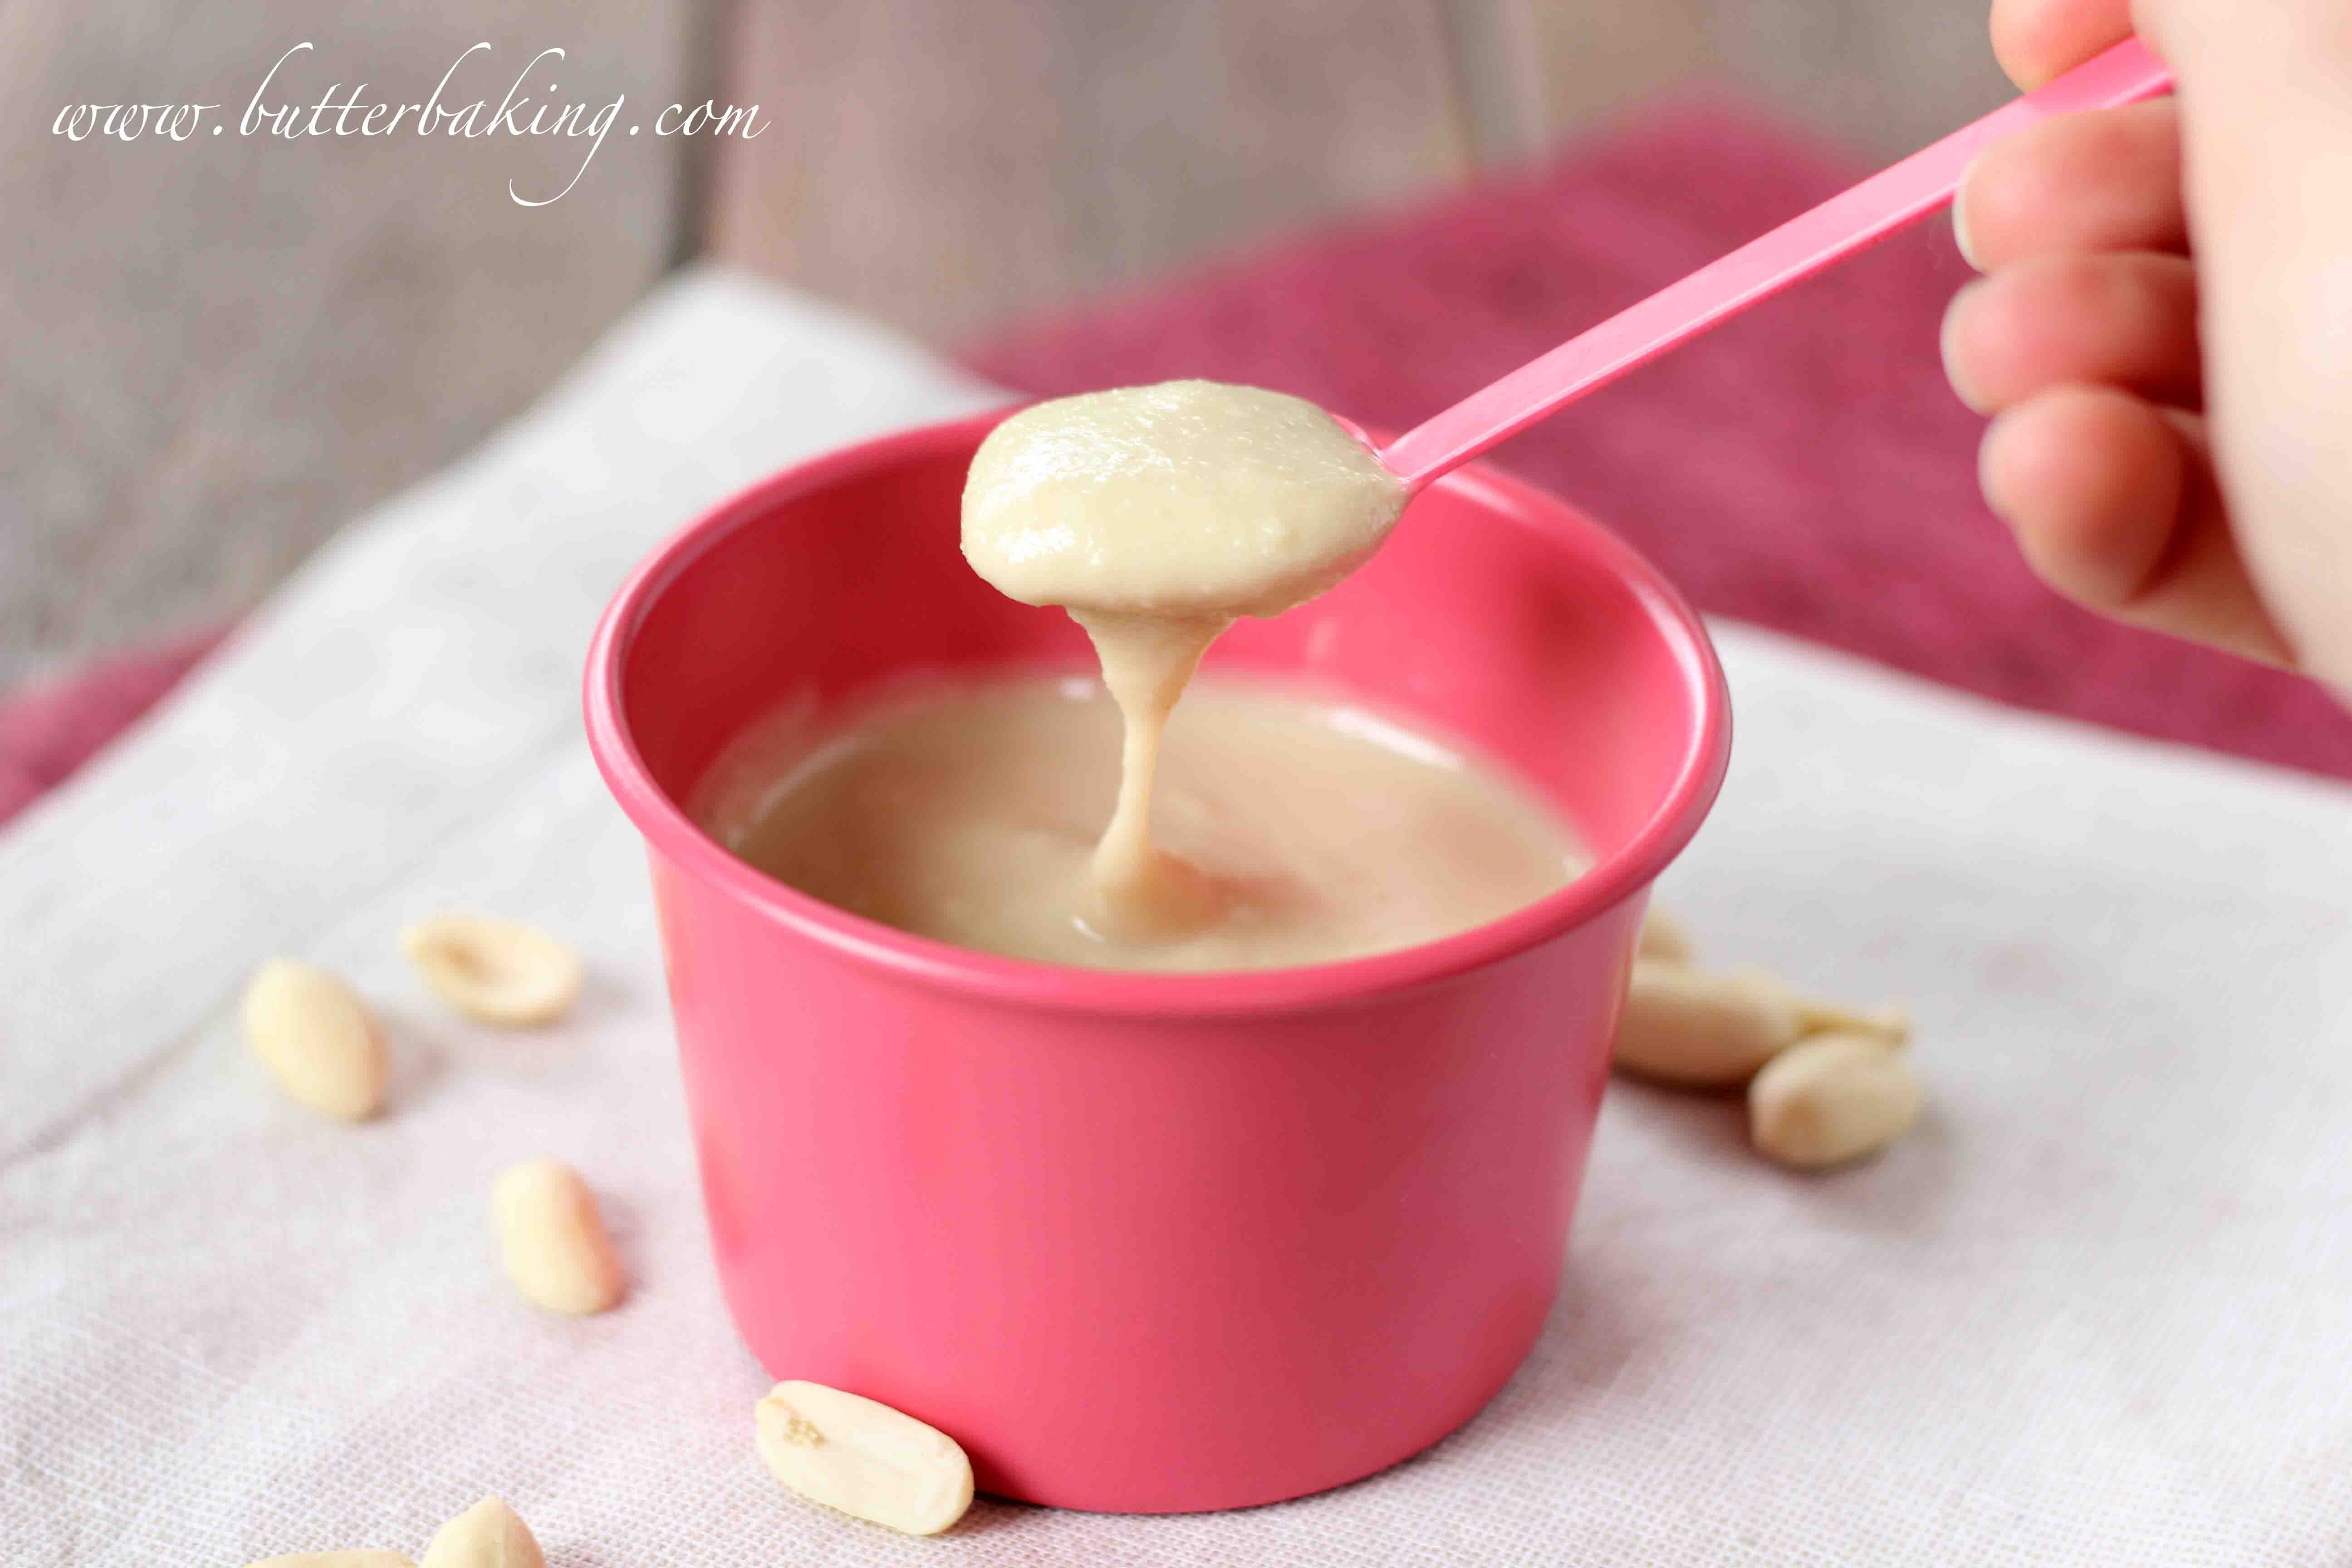 how to make healthy homemade peanut butter